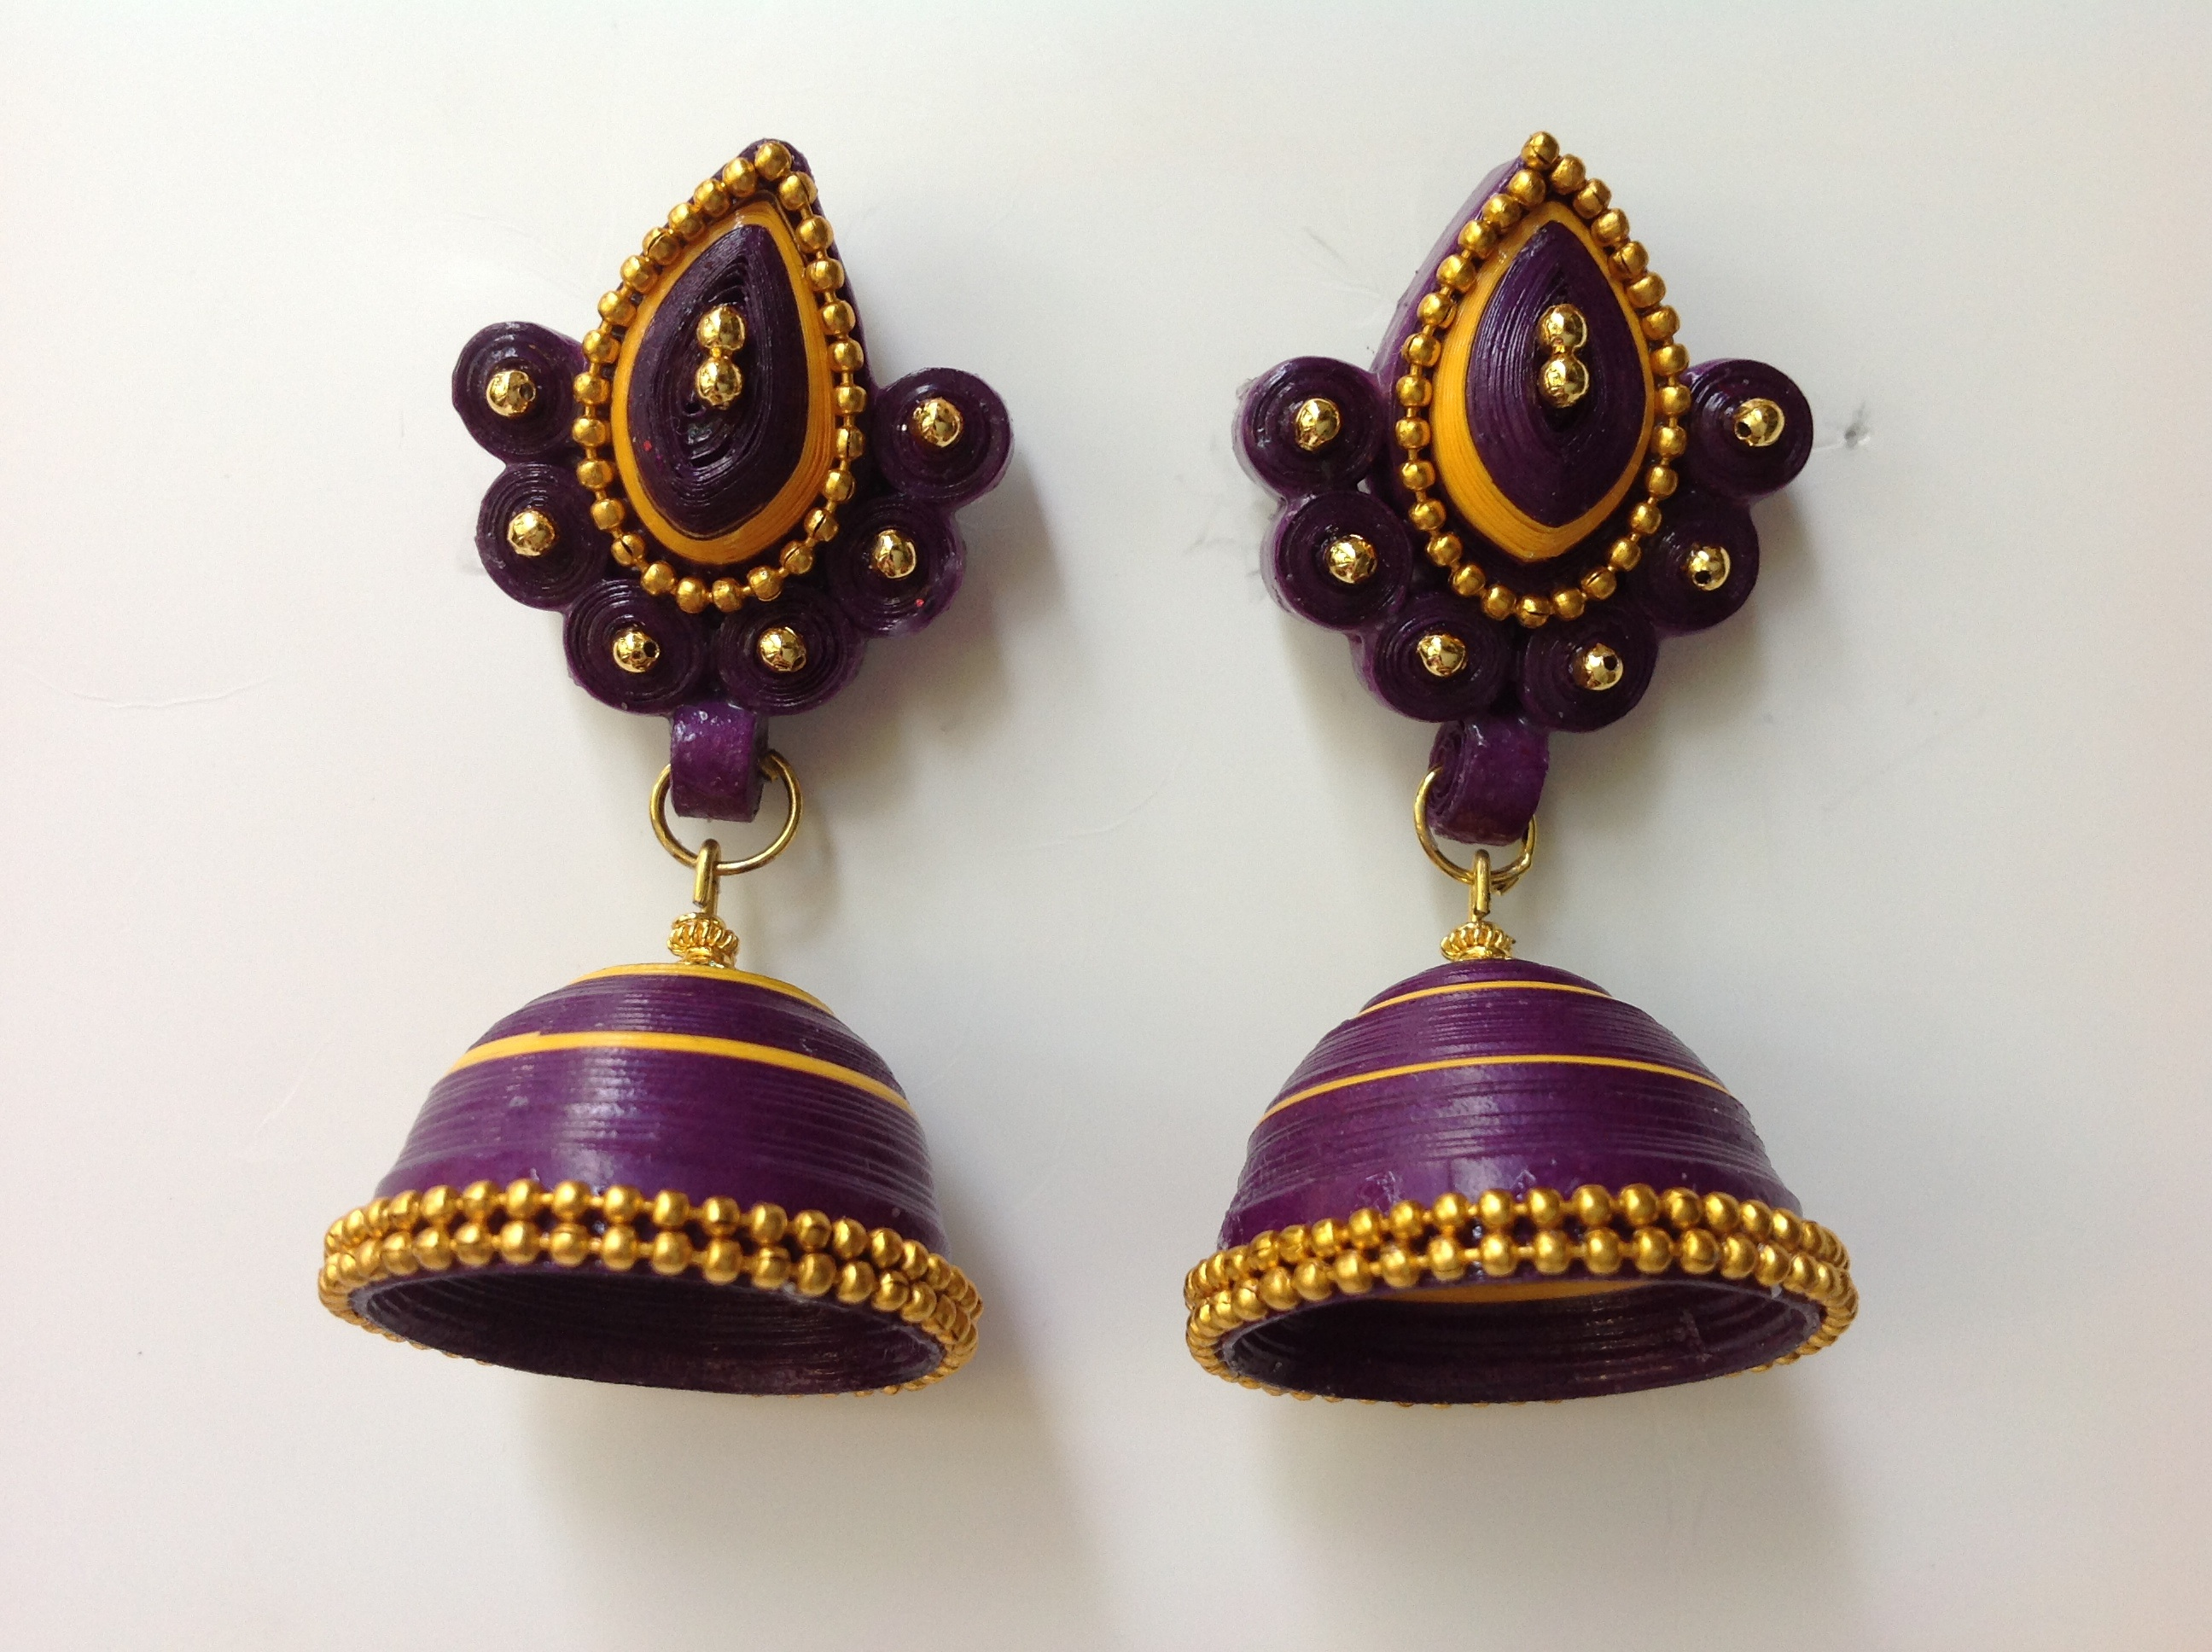 Quilling Earrings More Designs : Latest Beautiful Easy Paper Quilling Jewellery Designs Images Photos Collection